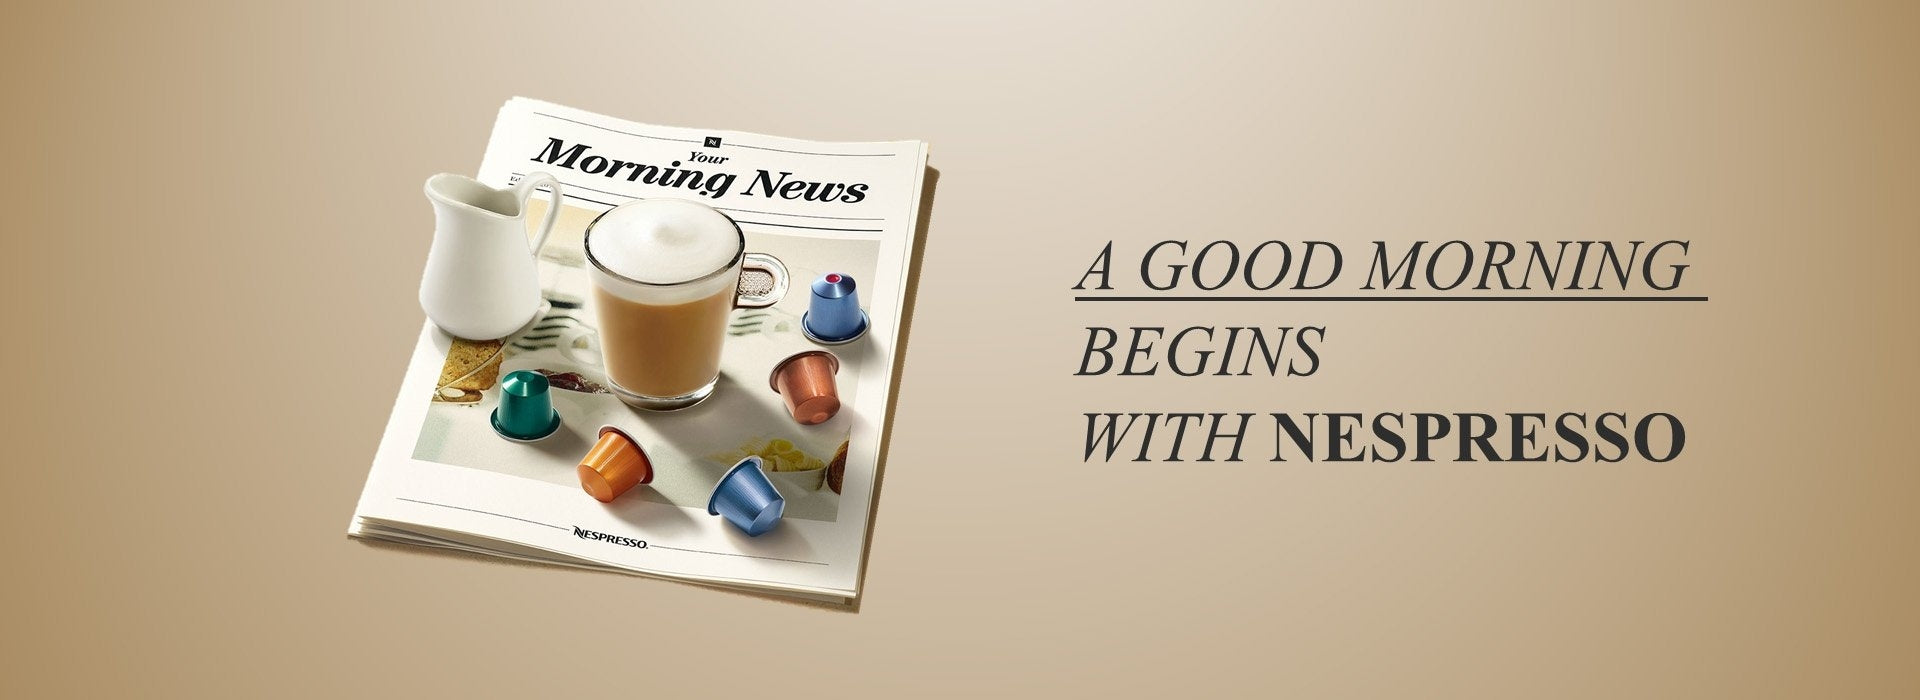 A Good Morning begings with Nespresso